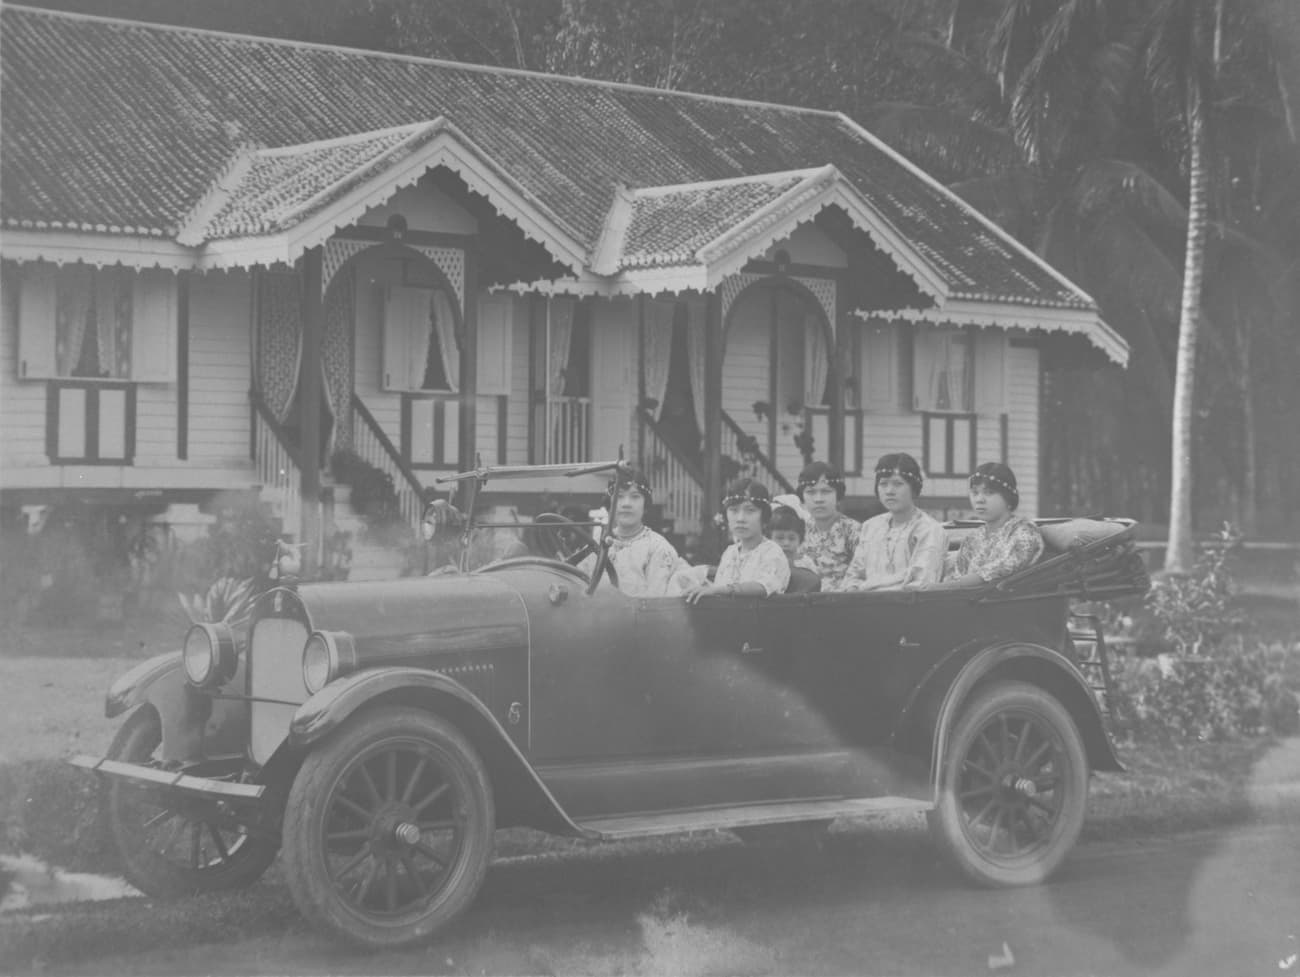 Motor car with female driver and passengers, 1920s